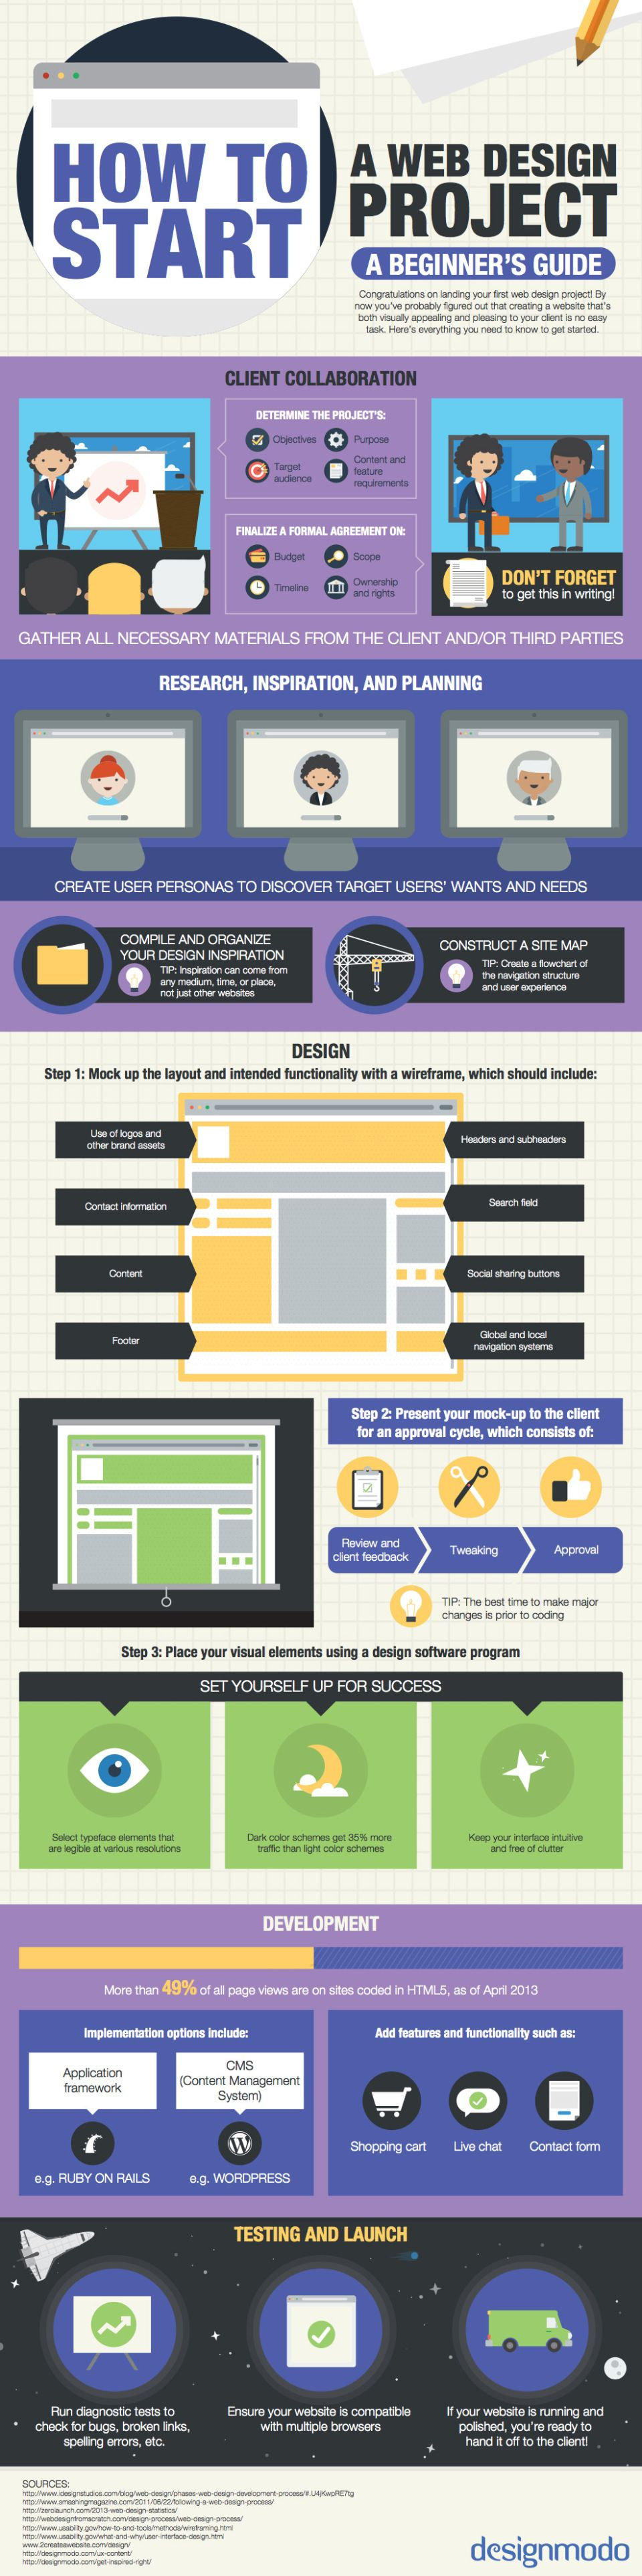 How To Start A Web Design Project Infographic Web Development Design Web Design Projects Web Design